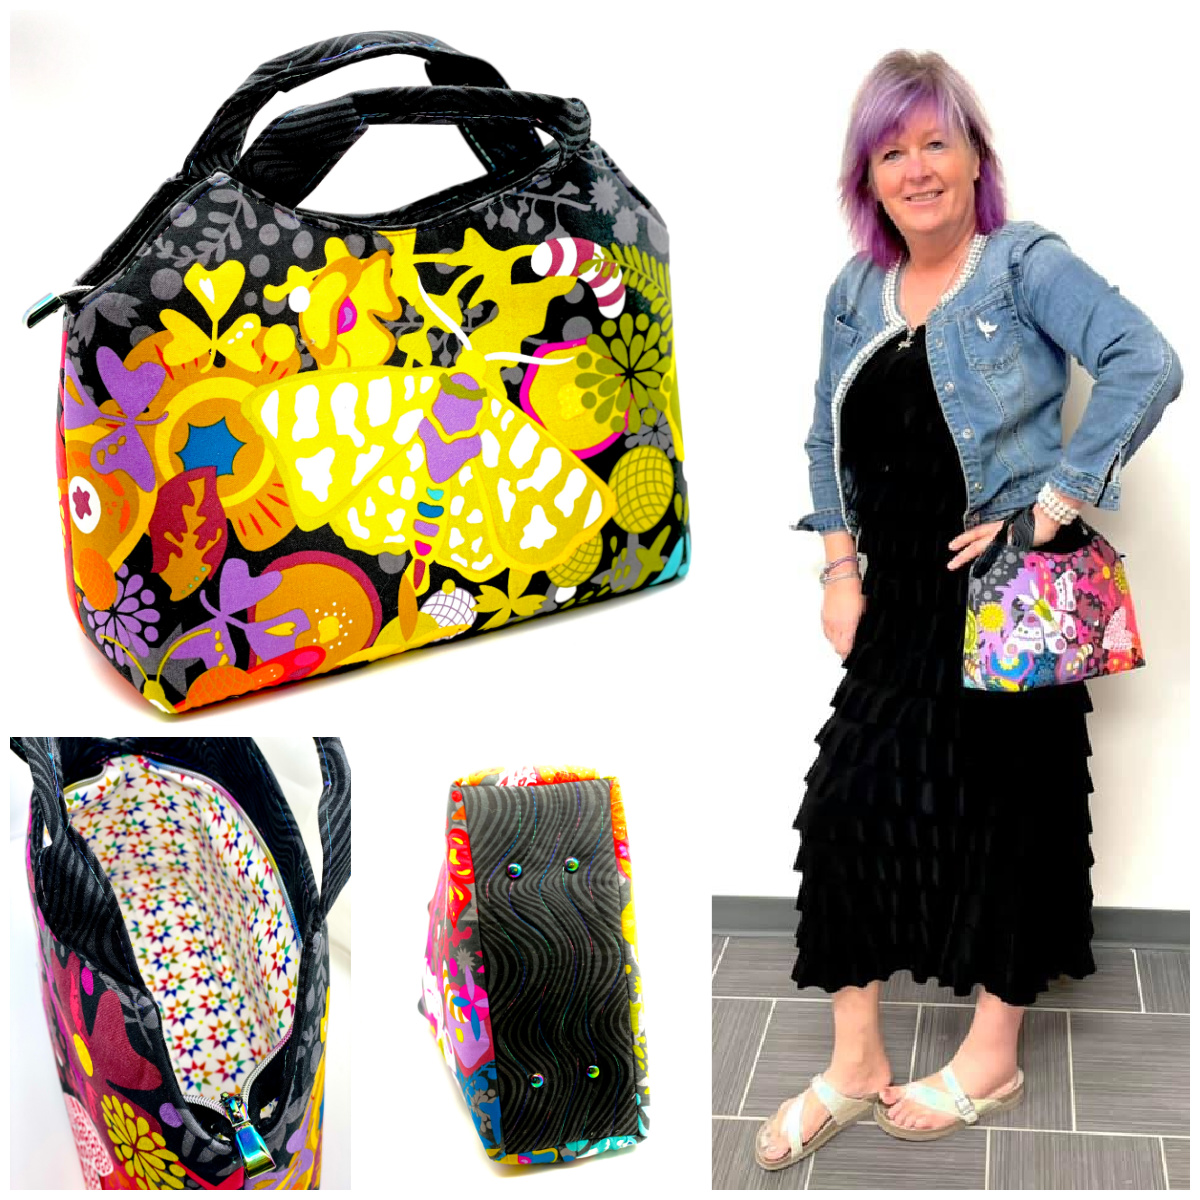 The Hope Handbag from Sewing Patterns by Mrs H, made by Tracy Loyek of Purple Katz Quilting